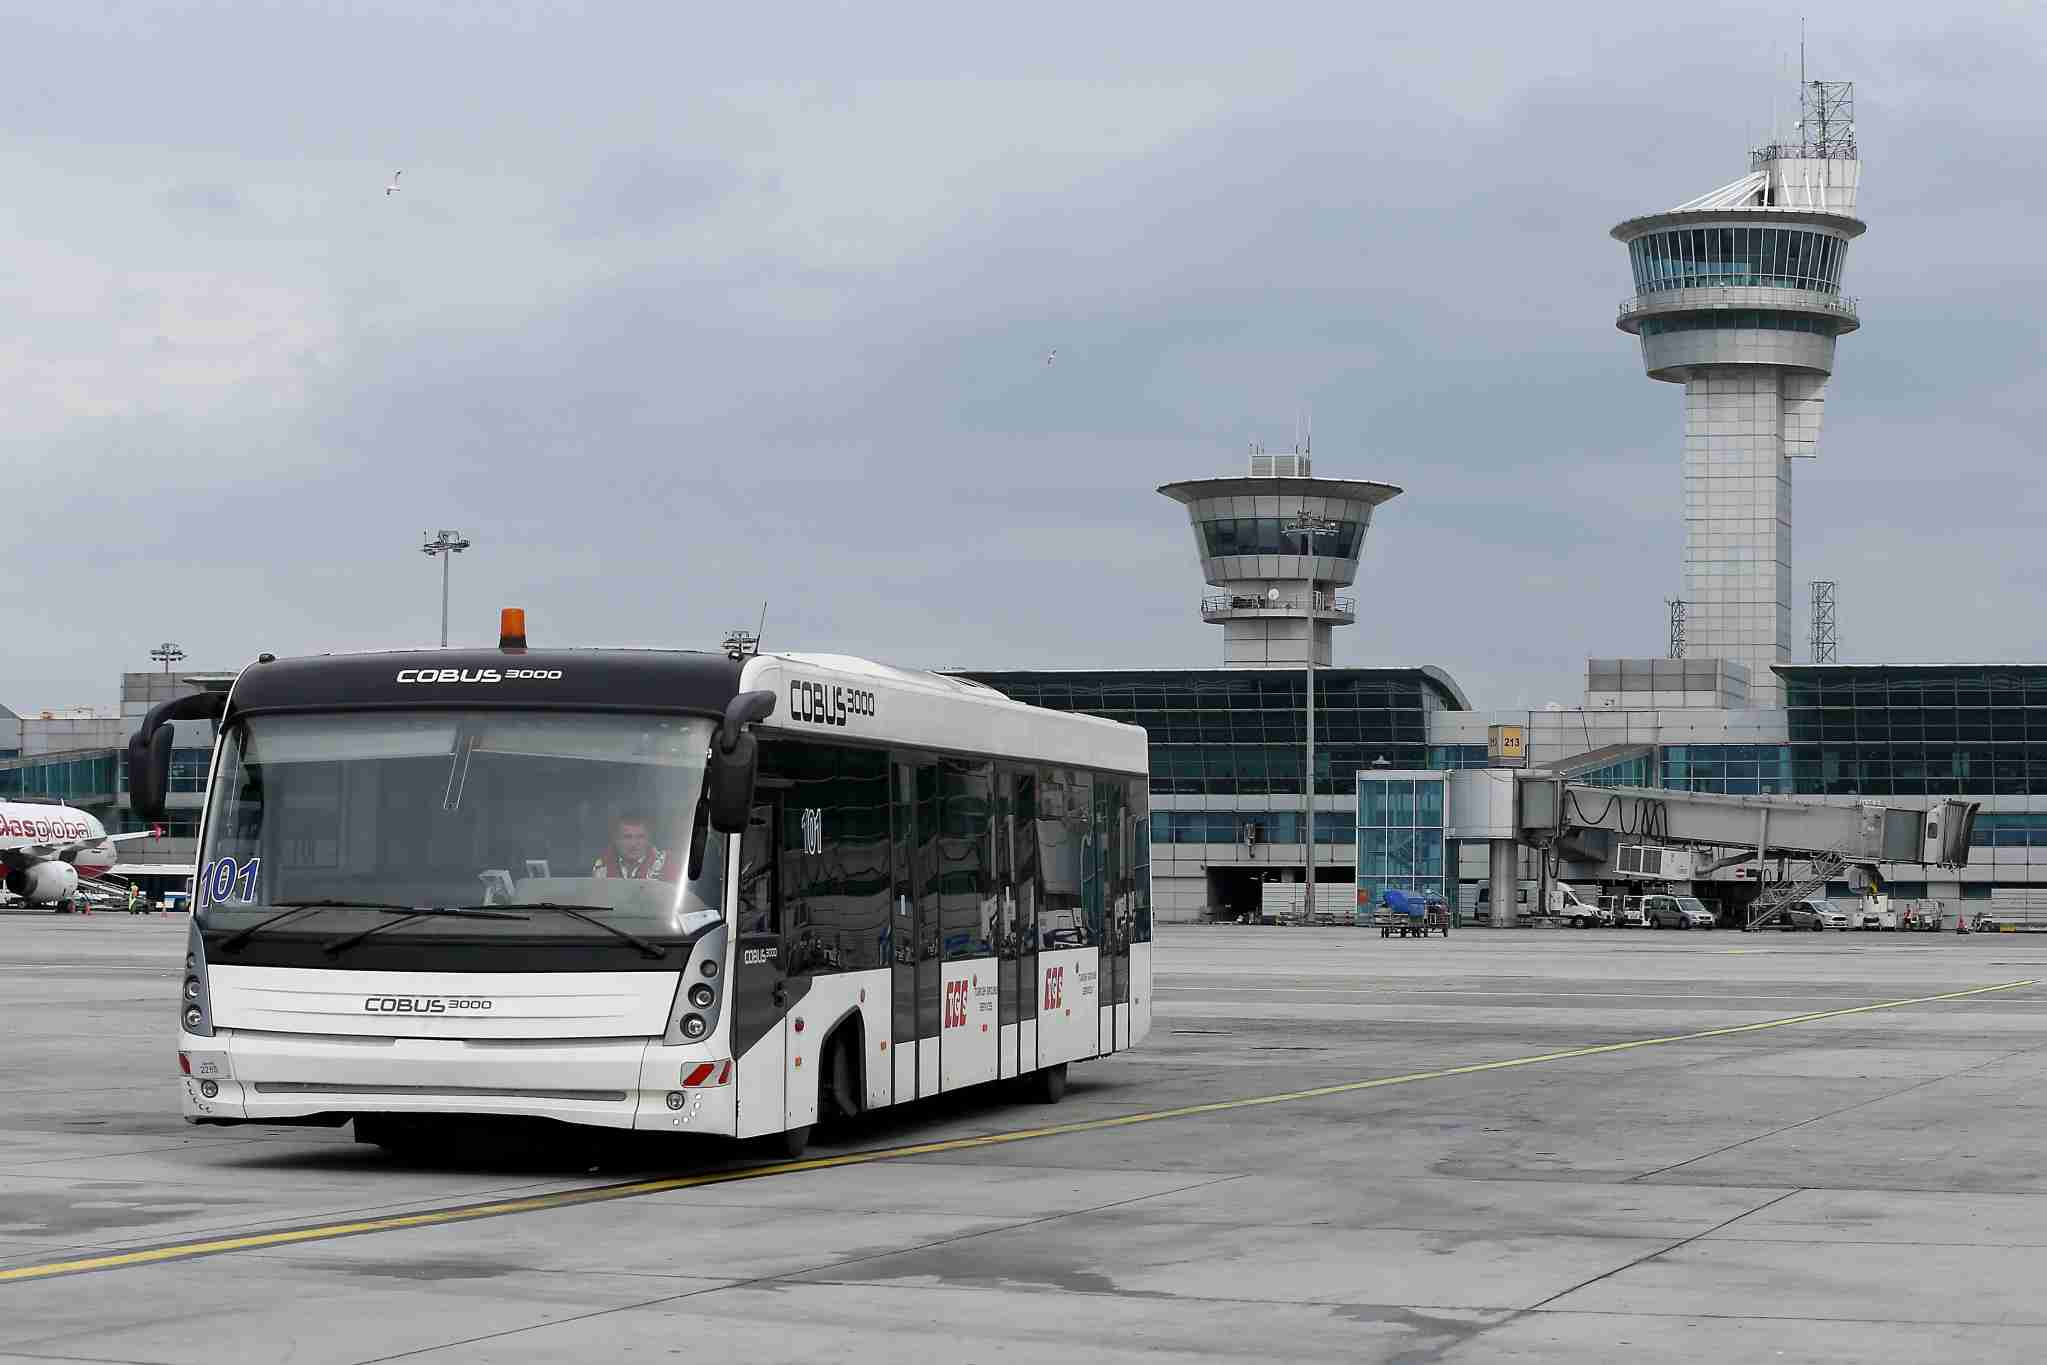 ISTANBUL, TURKEY - MARCH 22: A bus is seen at Ataturk Airport, which is planned to be closed for commercial flights after transference period to Istanbul Airport had been completed, in Istanbul, Turkey on March 22, 2019. Ataturk Airport, which is short of 24 km from the city center, was used for international charter flights for years after coming into service for military purposes in 1912 in Yesilkoy. Civil aviations started in Yesilkoy Airfield in 1933 between Istanbul-Ankara after the military hangar and masonry were assigned to civil aviation. The airport was decided to be an international airport with the purpose of development of Turkish civil aviation with Convention on International Civil Aviation, which was sign on 1944 in Chicago. Construction of the airport had started in 1949 and was completed in 1953 and started its international flights. (Photo by Isa Terli/Anadolu Agency/Getty Images)